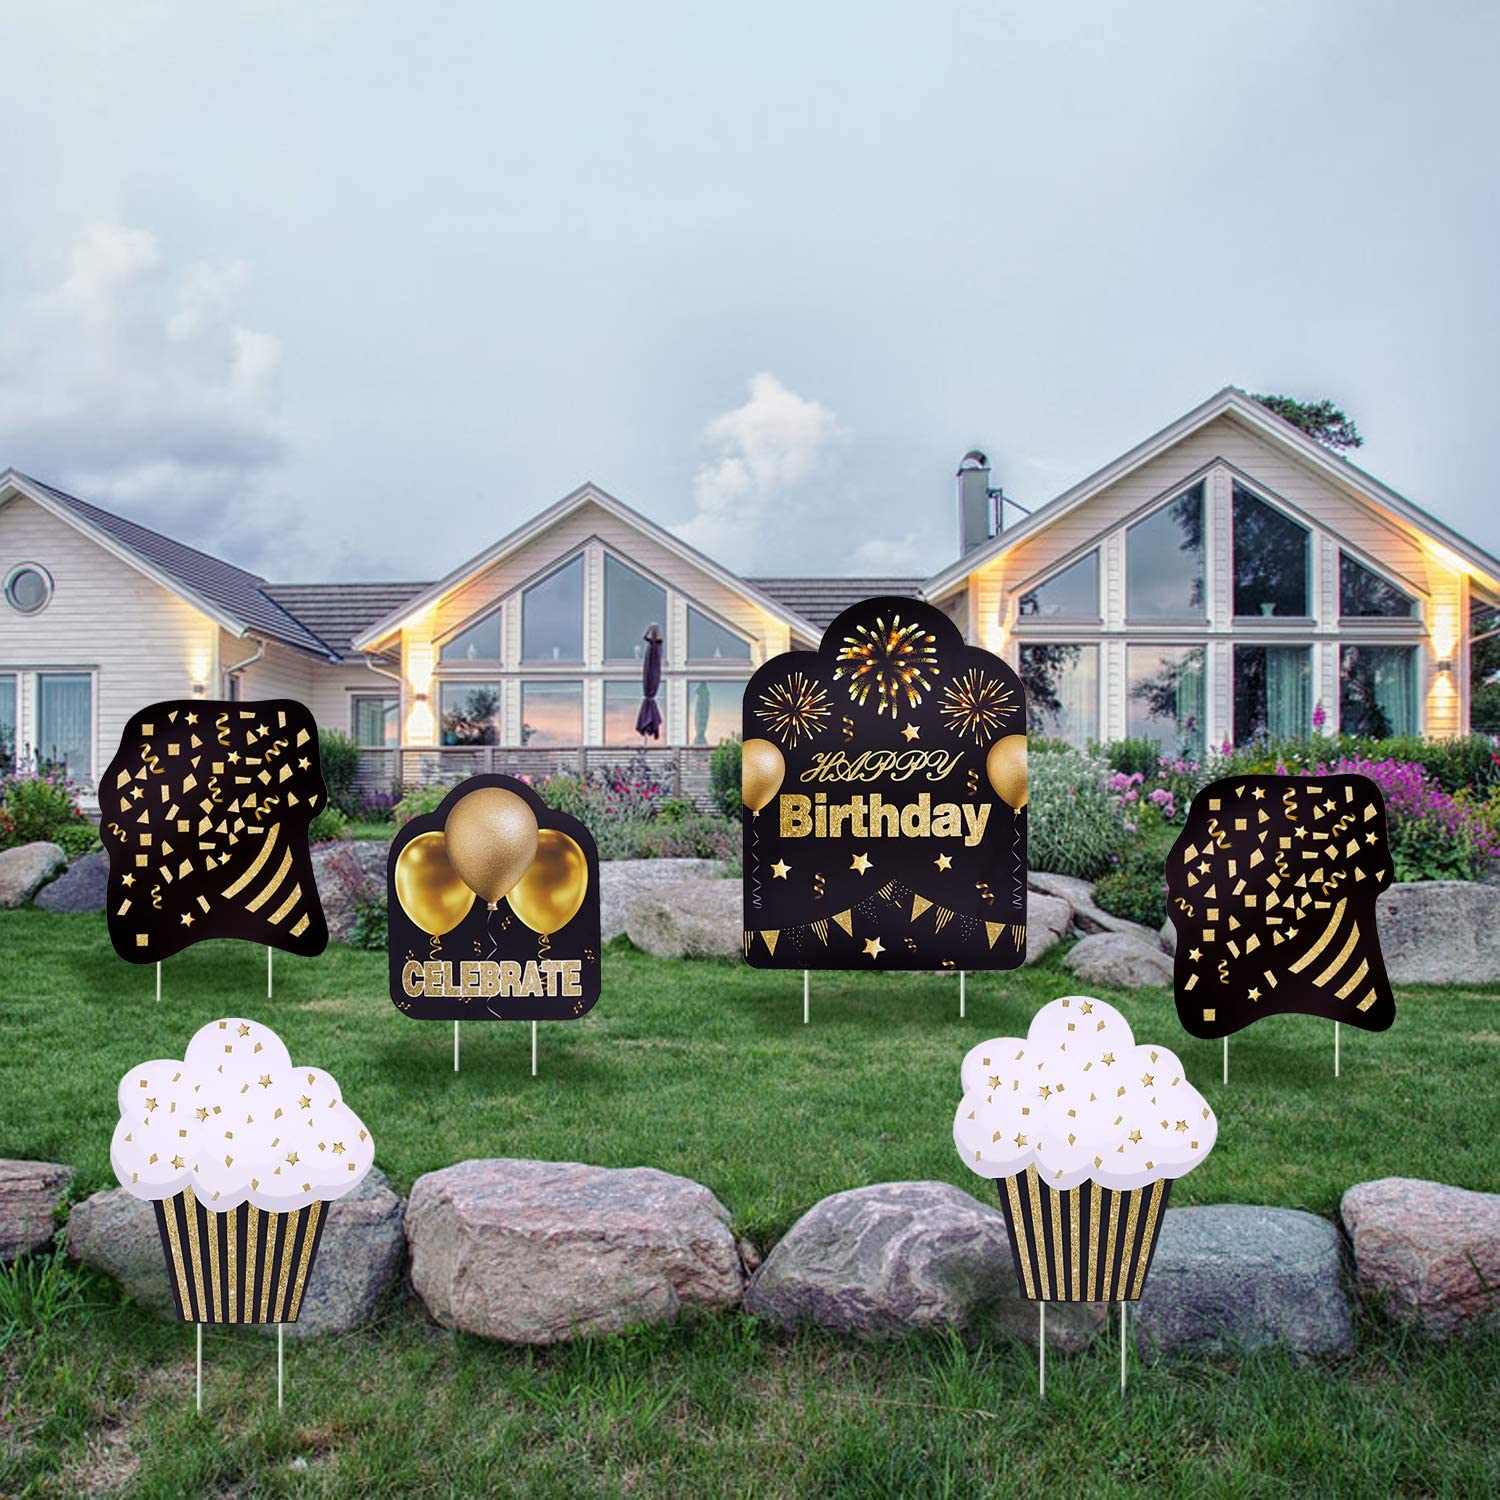 Tuoyi Happy Birthday Yard Garden Sign Decorations, 6pcs Outdoor Weatherproof Corrugated Plastic Banner with Metal Stakes for Celebrate Birthday, Apply to All Ages